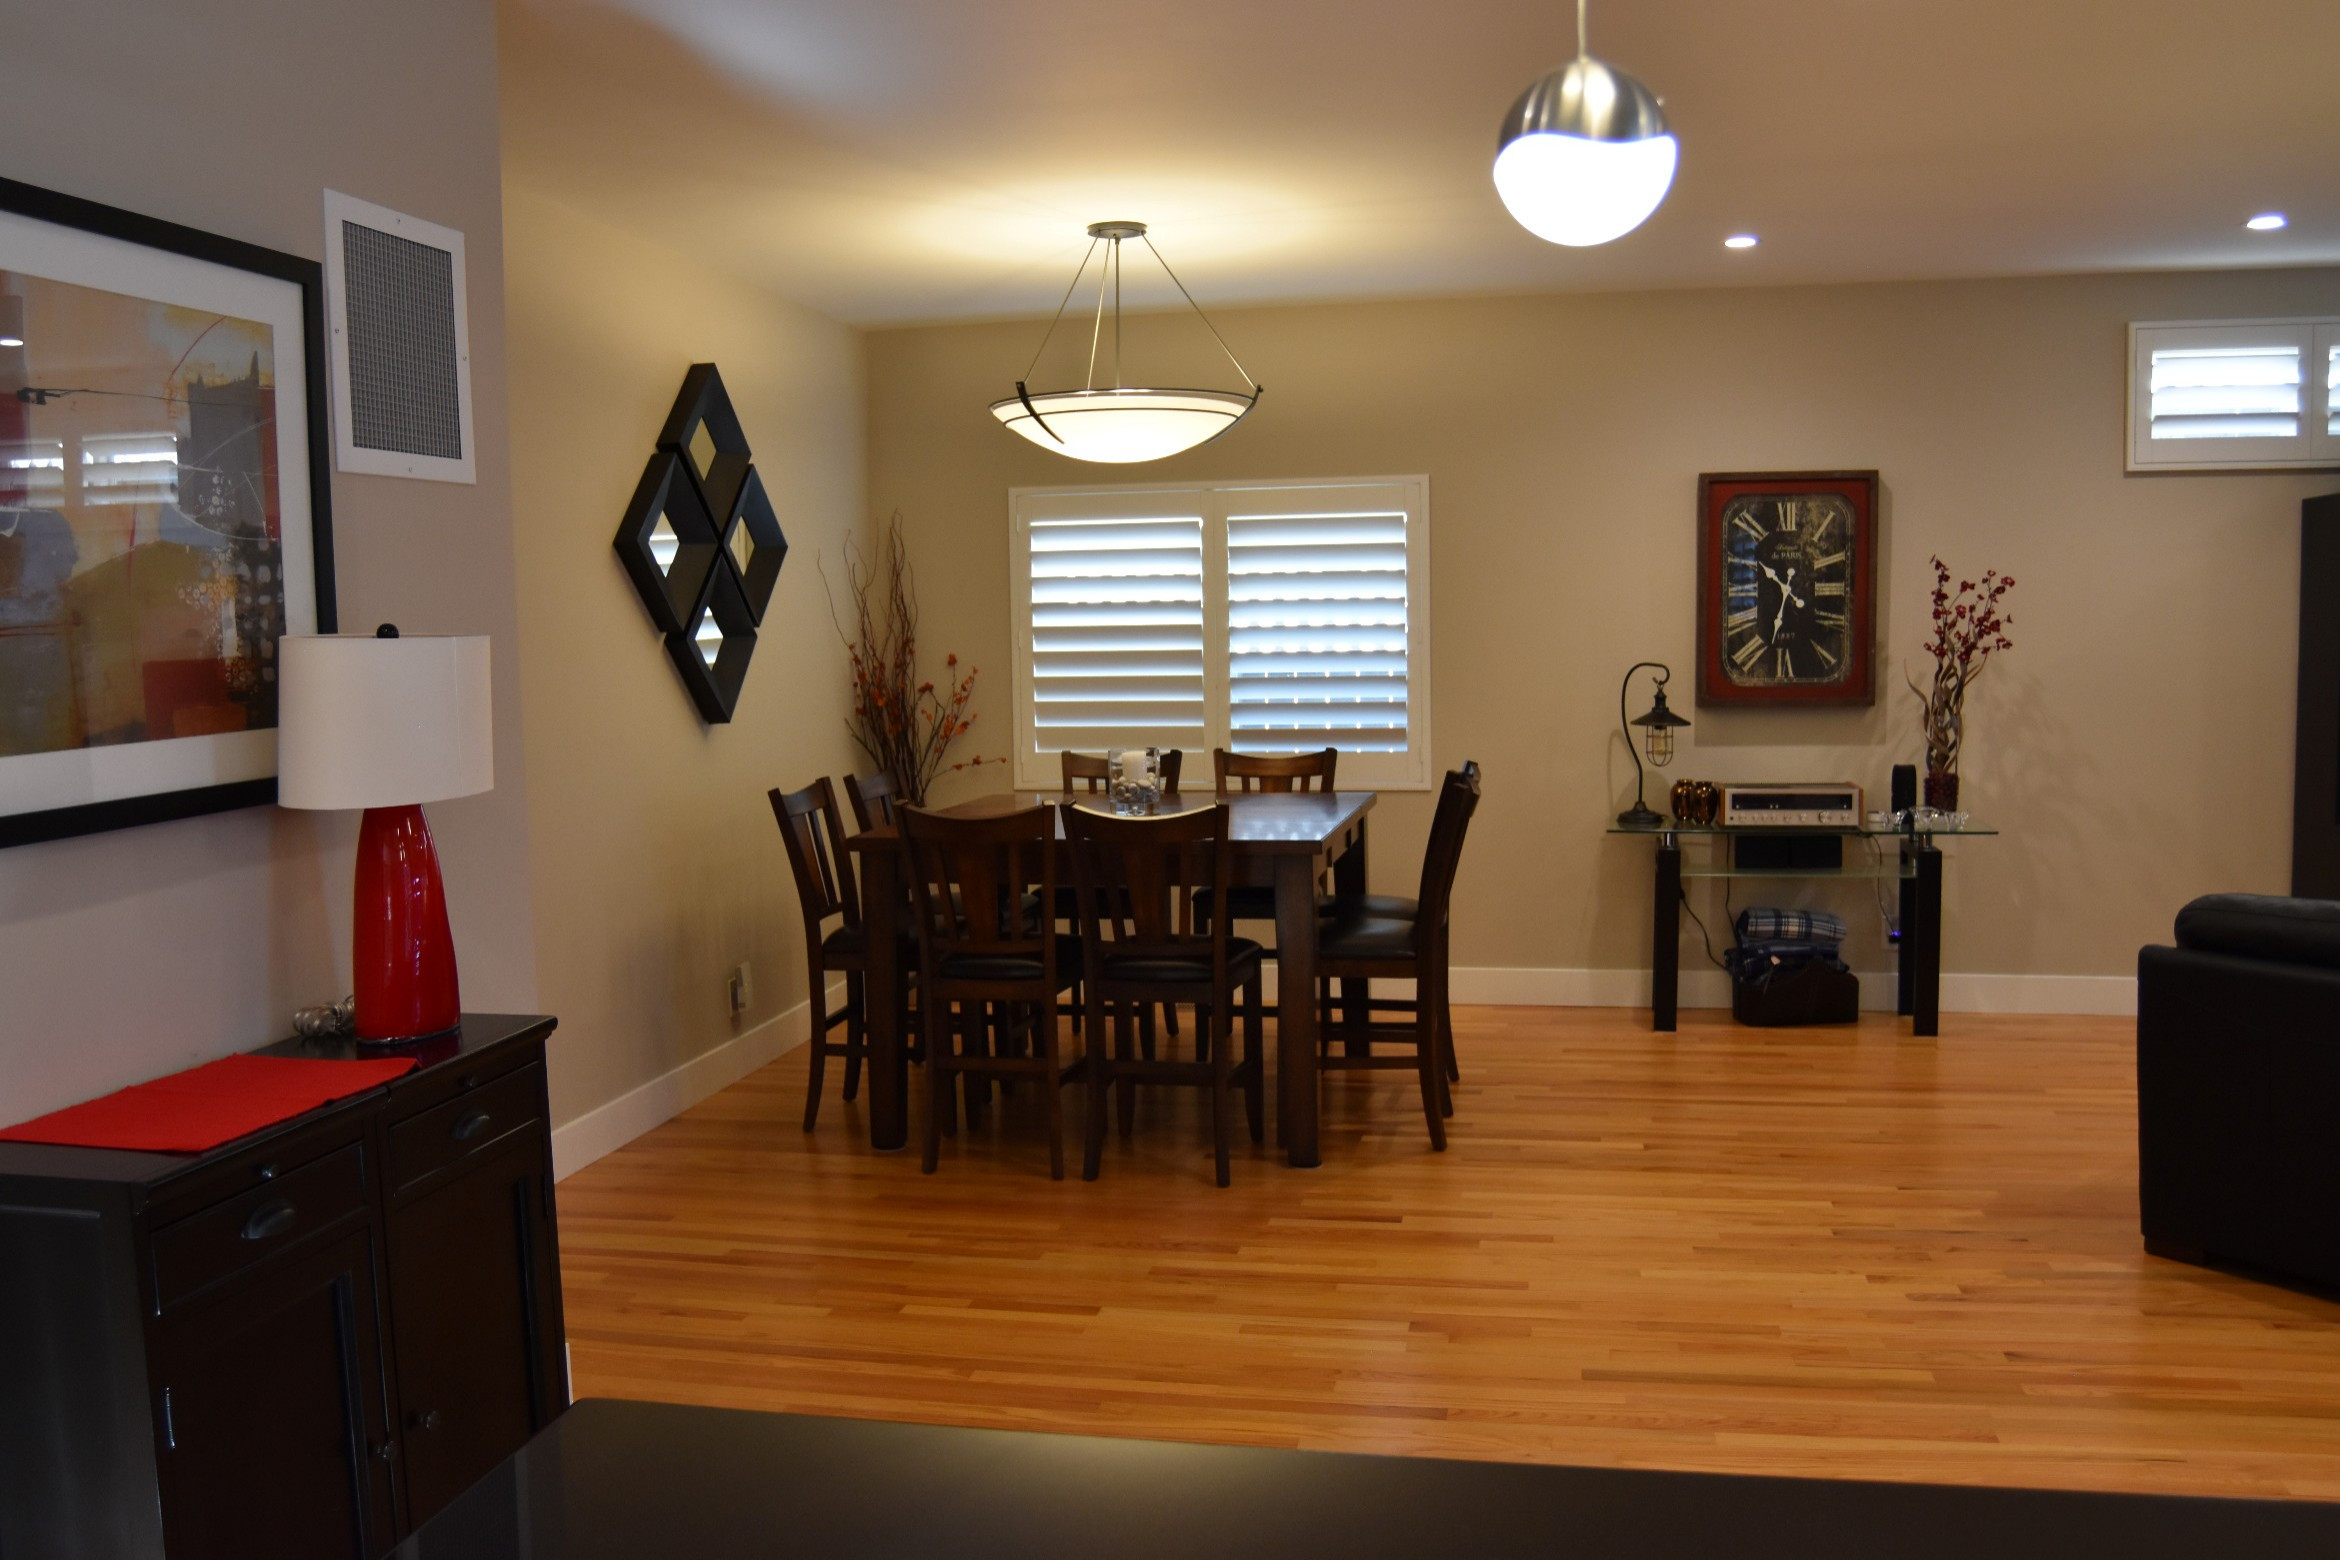 Dining area with 9' ceilings.